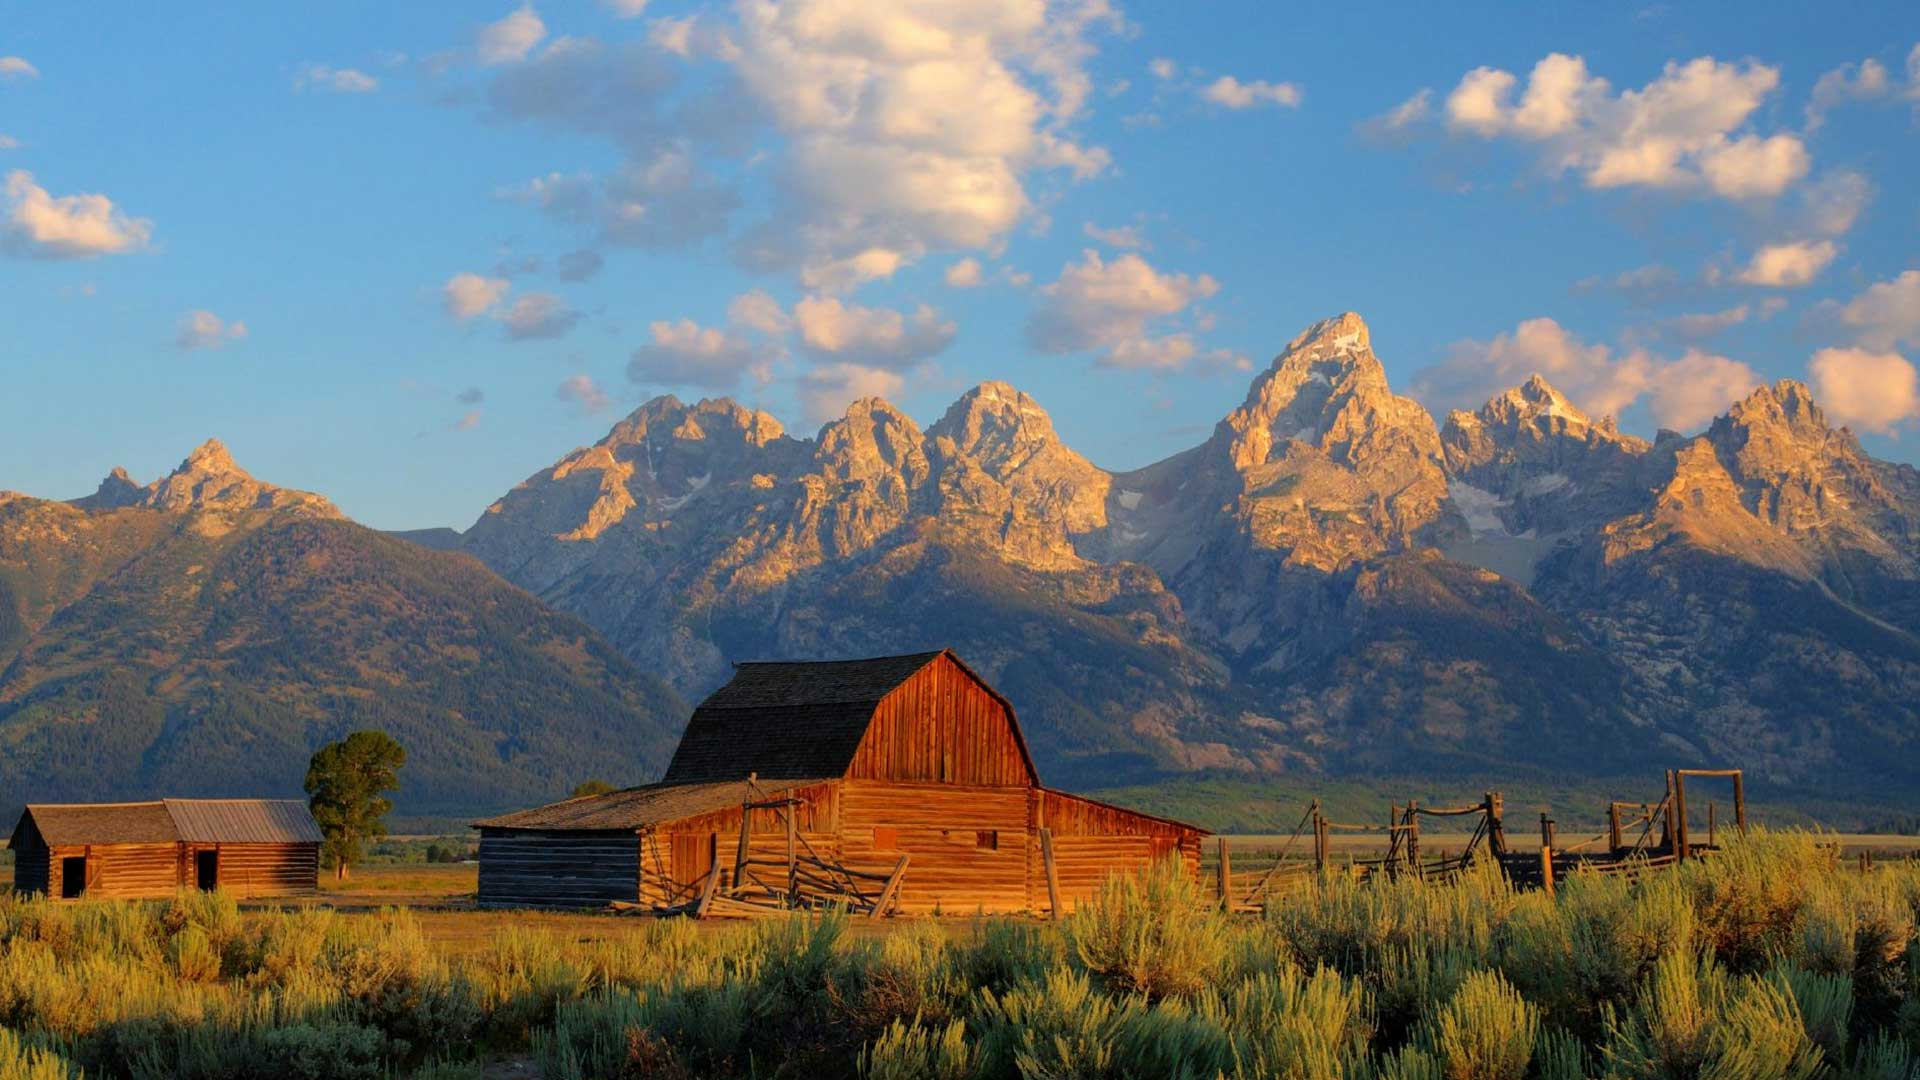 top 10 most popular national parks in the us according to tripadvisor